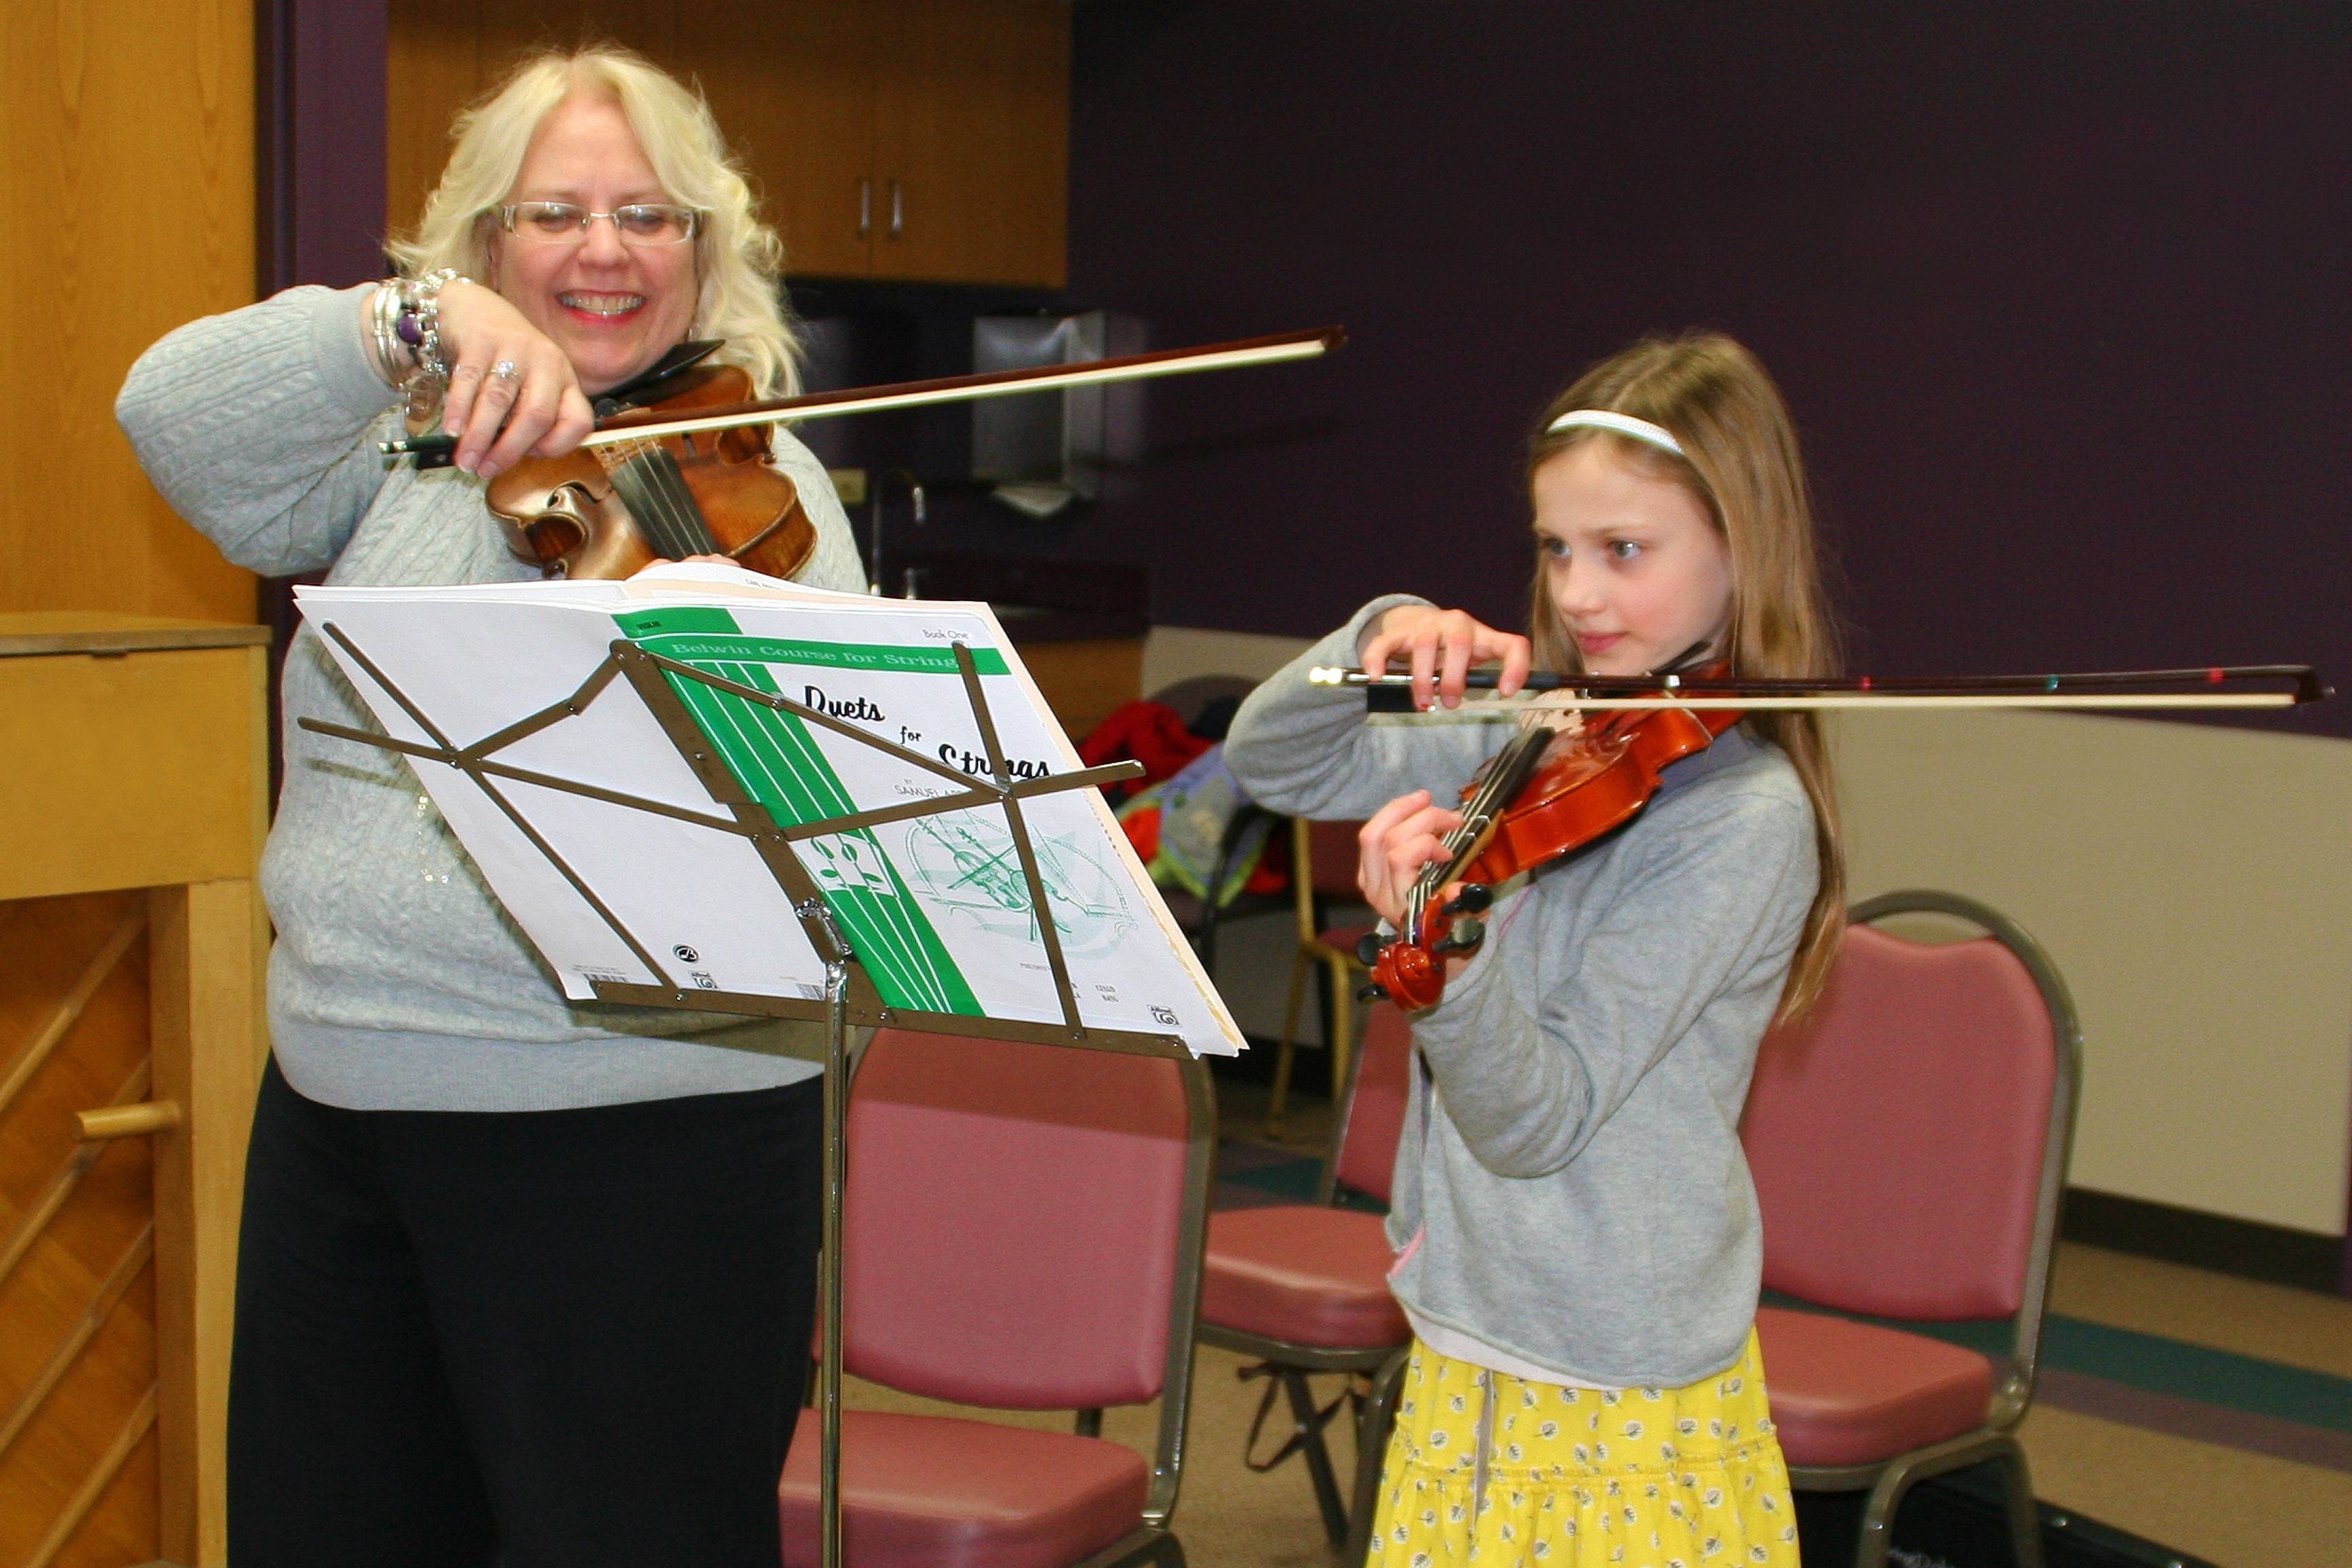 Des Plaines Park District violin instructor, Pam Culley works on a duet for strings with her student.Lisa Haring